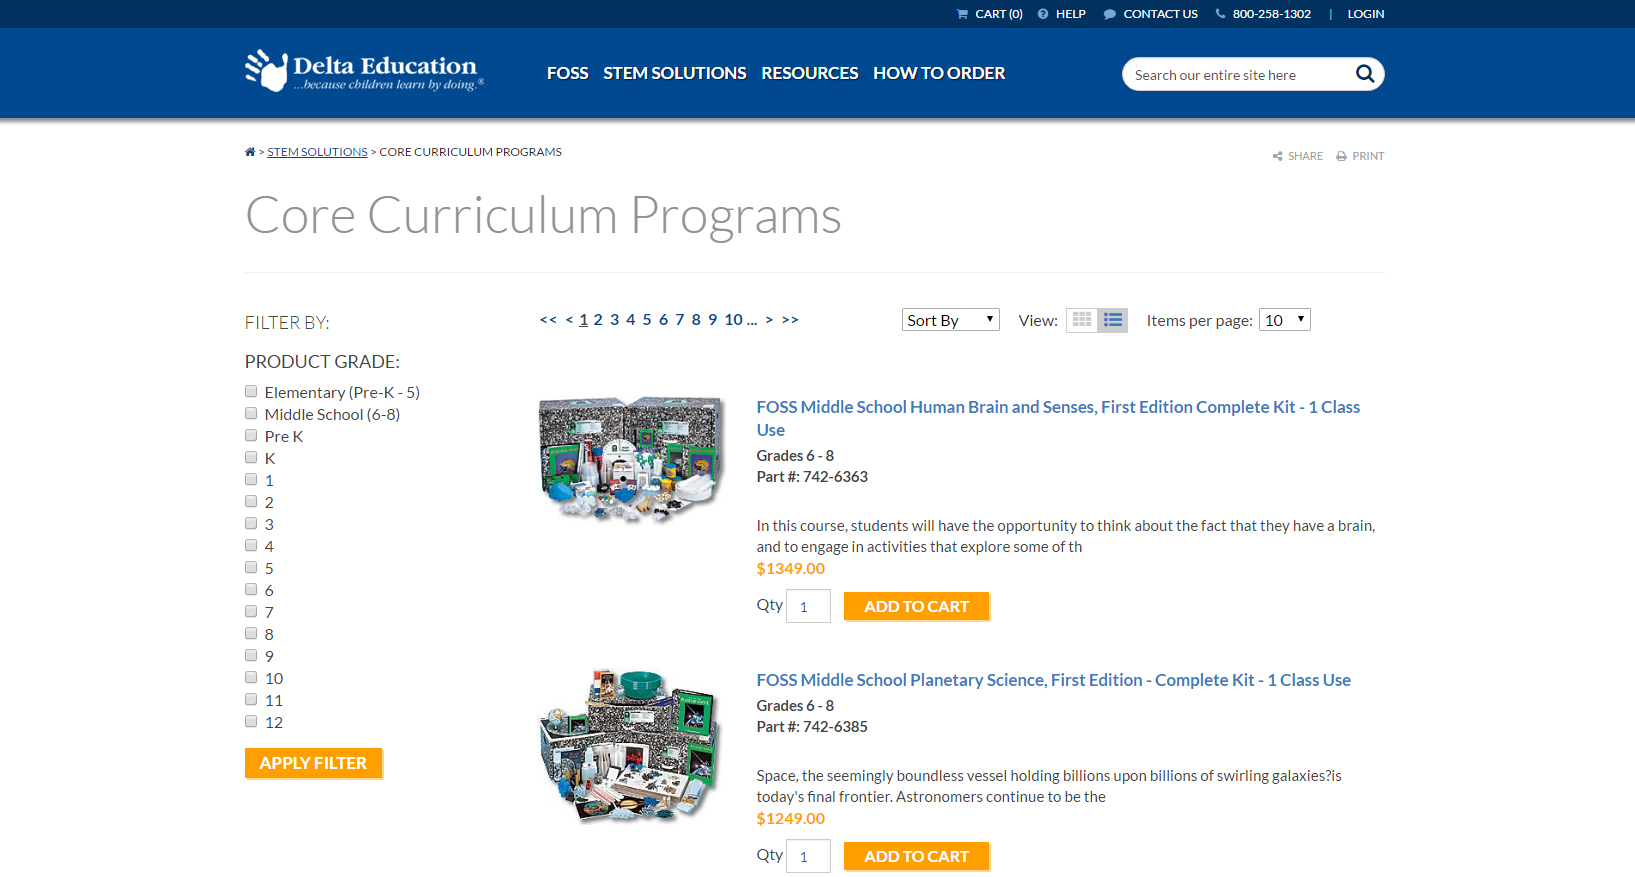 Core Curriculum Programs